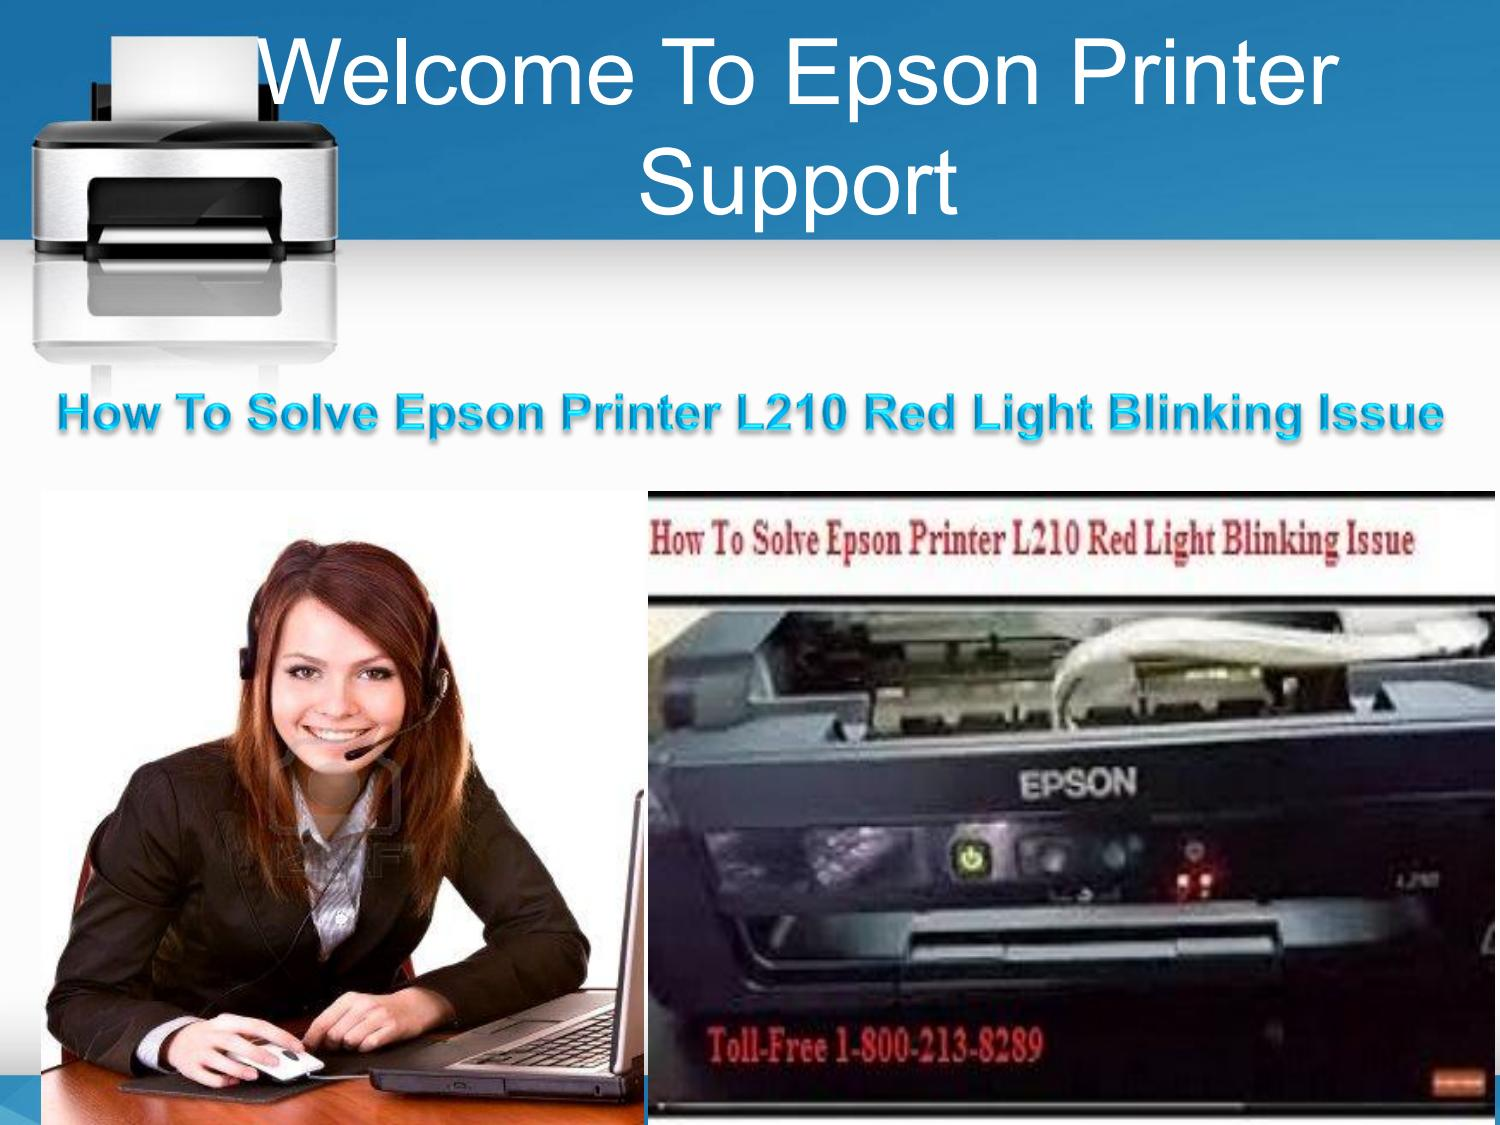 How to solve epson printer l210 red light blinking issue by